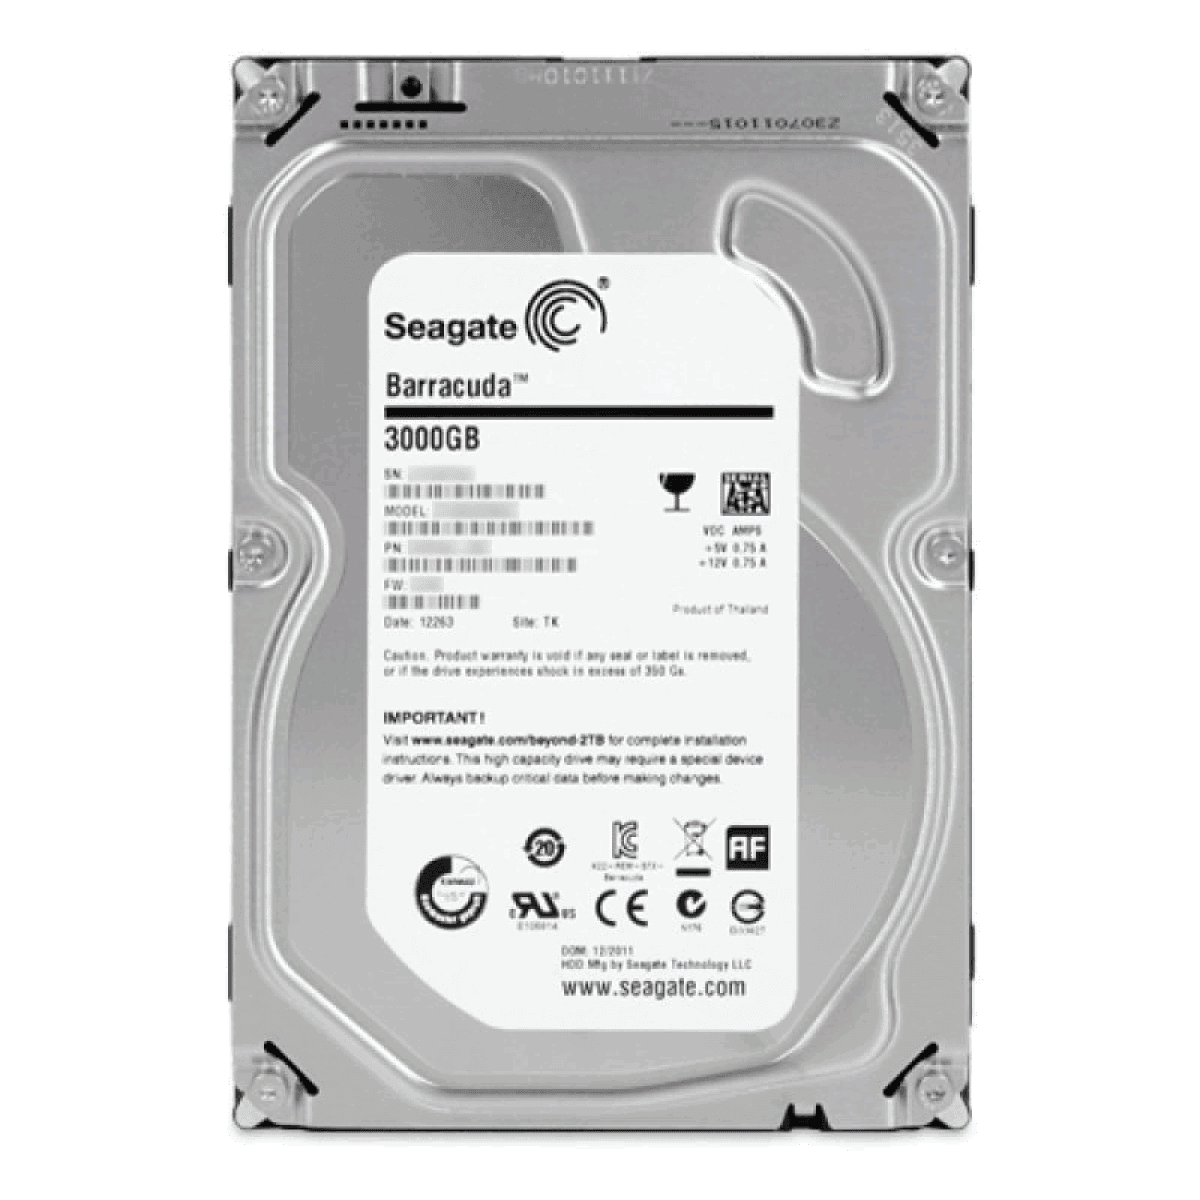 Seagate ST3000DM001 SATA Drive Drivers for PC